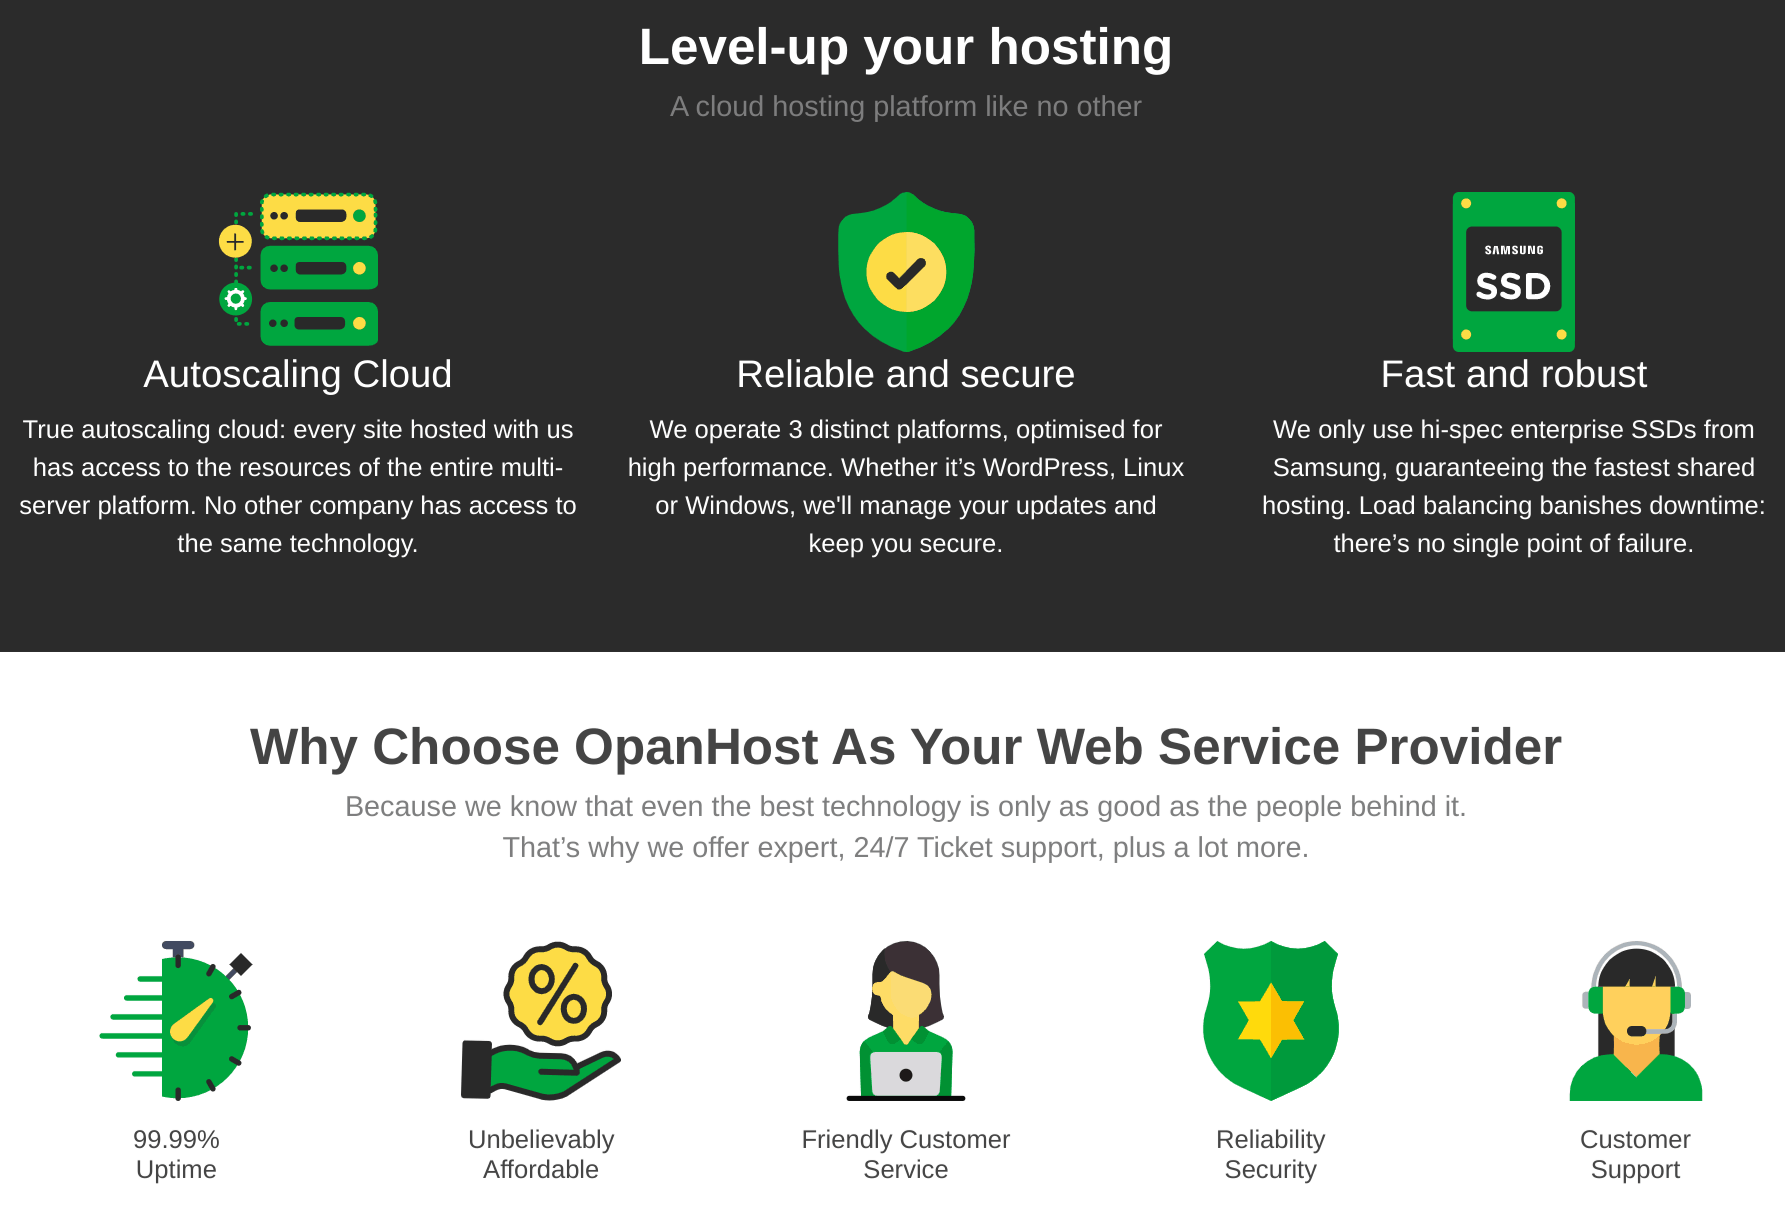 opanhost features